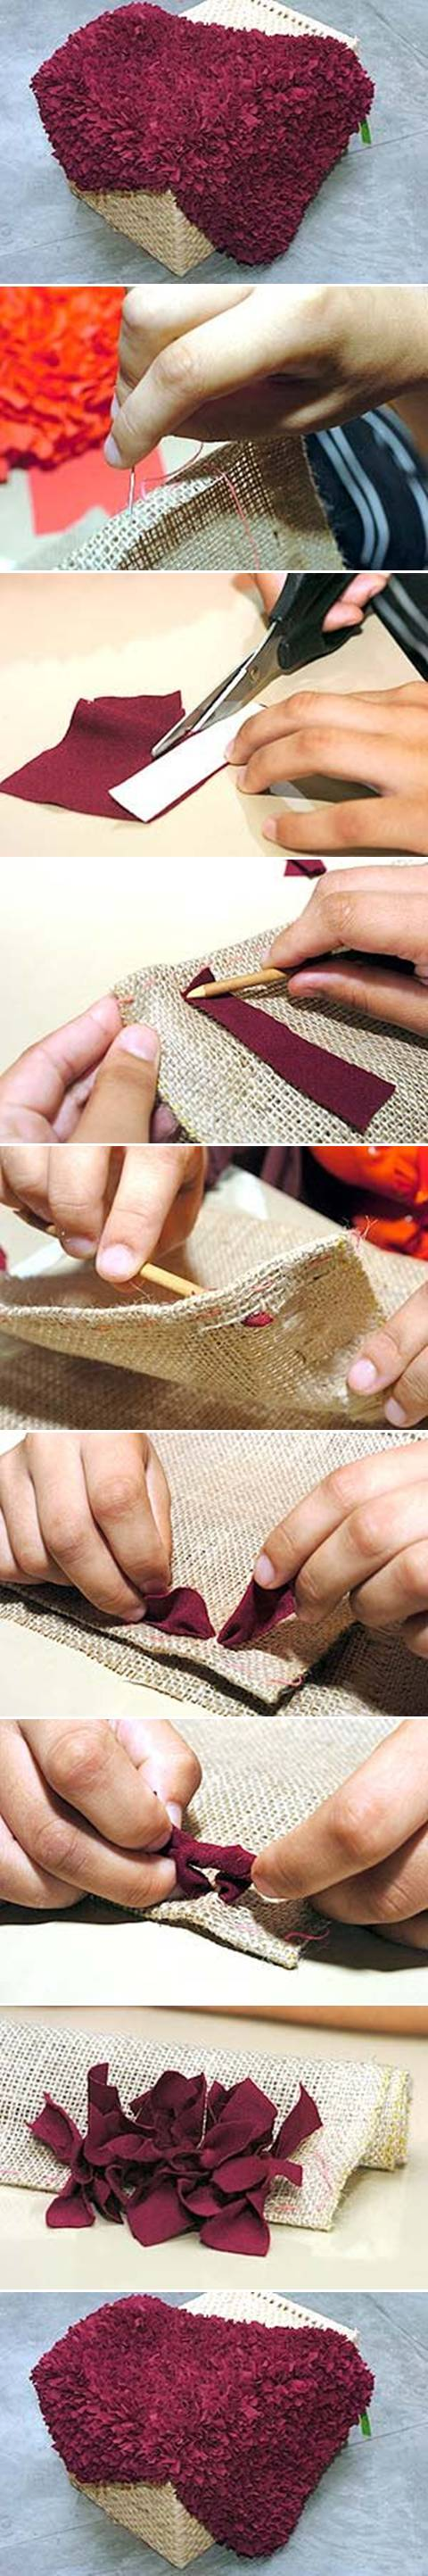 how to make rug from fabric step by step